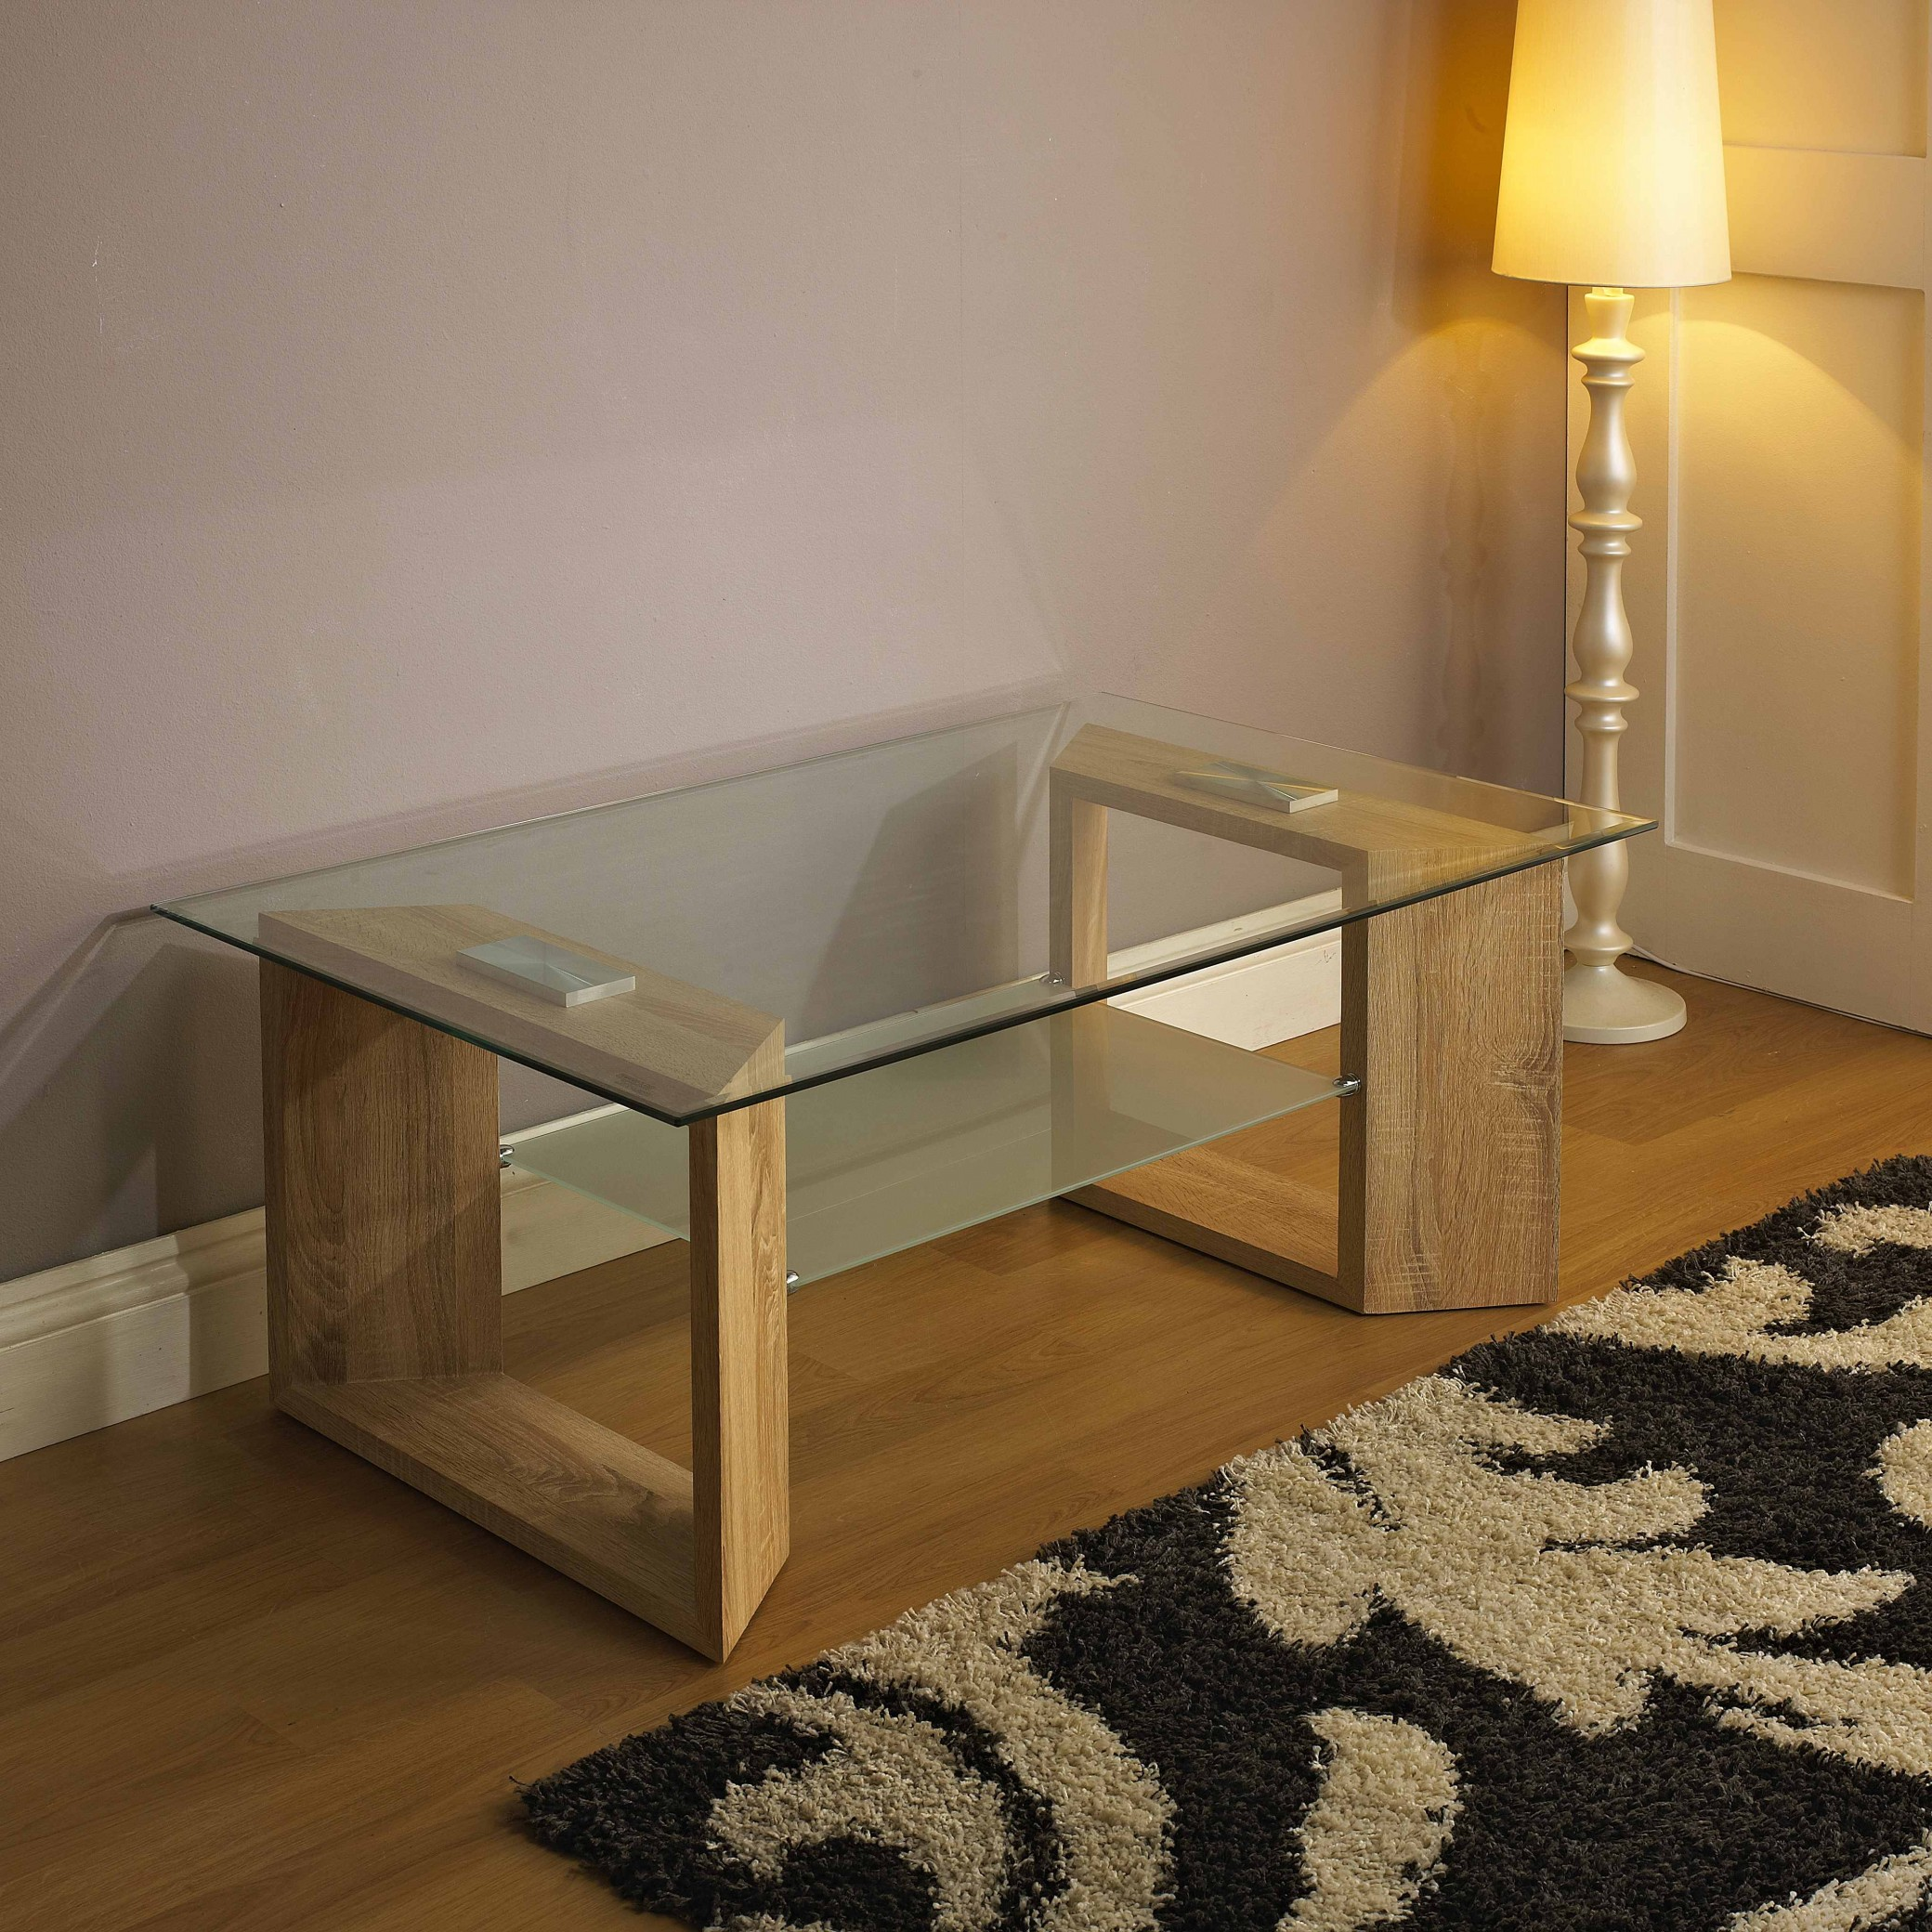 Midland furniture company for Golf coffee table